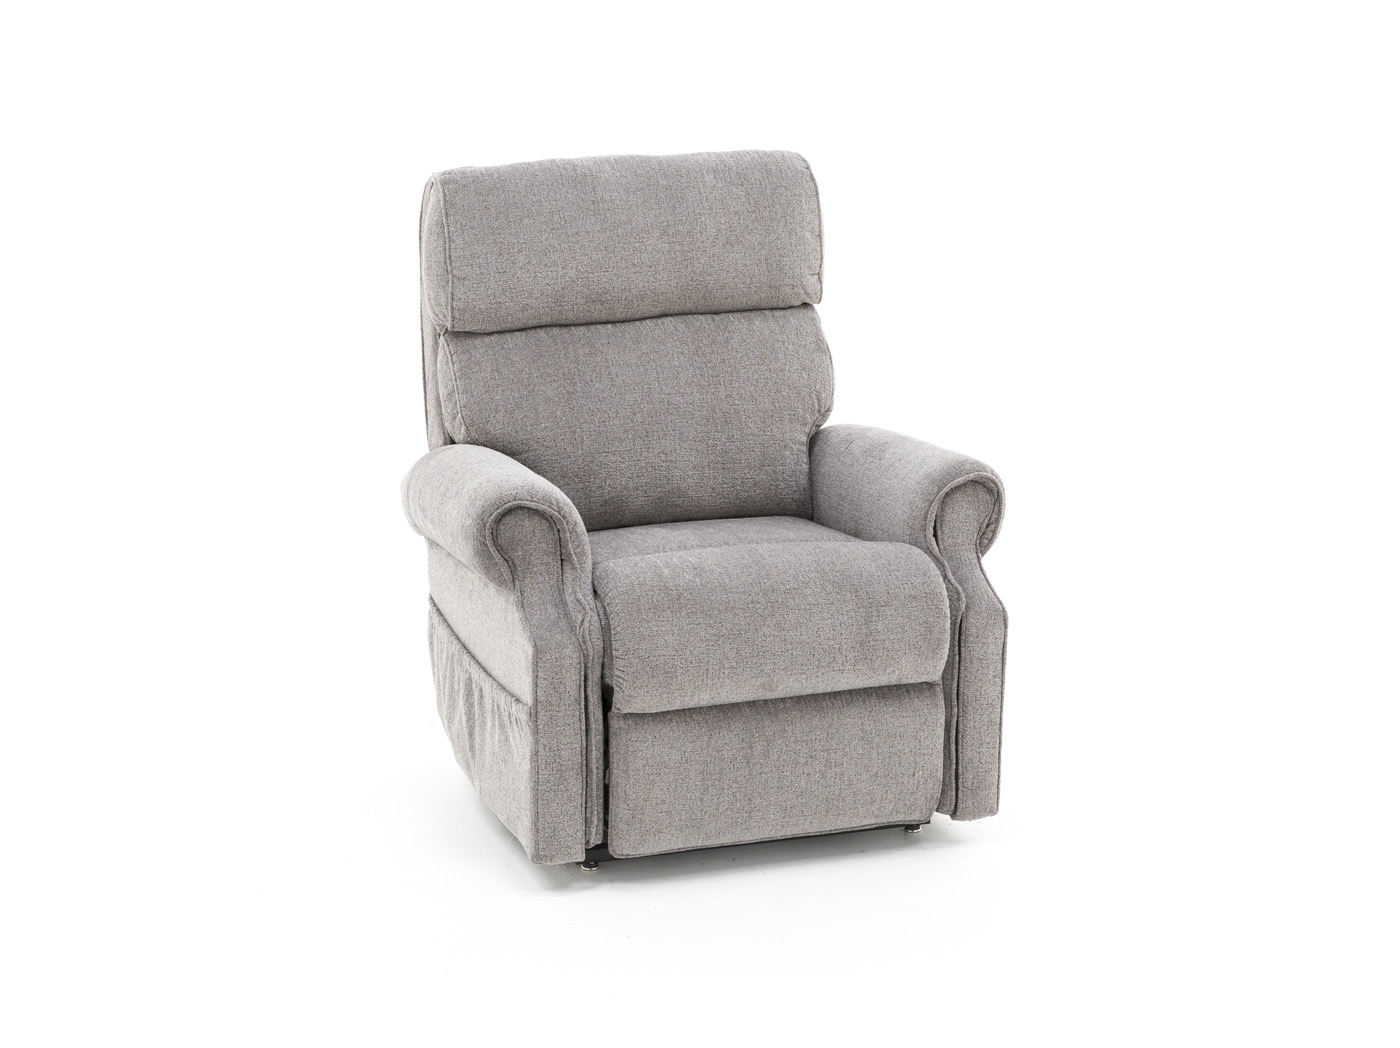 Direct Designs® Total Comfort Lift Chair  sc 1 st  Steinhafels & Steinhafels - Living Room - Recliners islam-shia.org